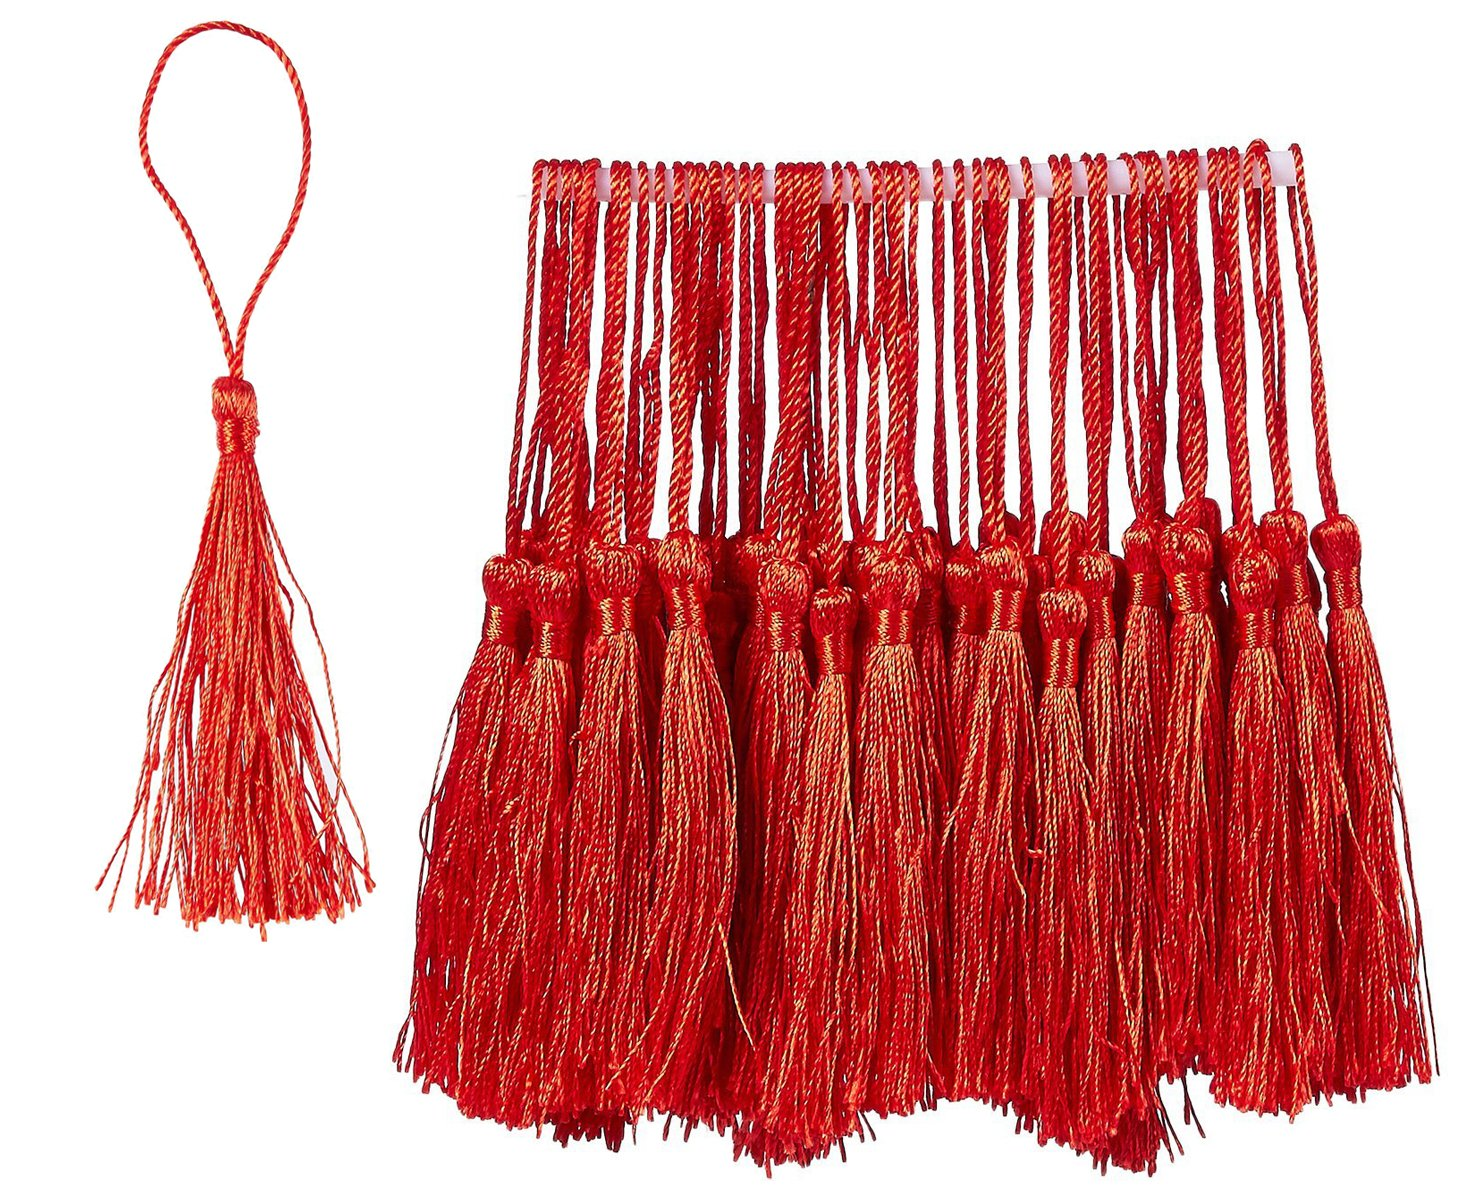 150-Pack Silky Floss Tassel Pendant with 2.3-inch Cord Loop 0.1 x 5.4 x 0.1 inches Bookmark Tassels Ideal for Handmade Craft Accessory Souvenir Burgundy Home Decoration DIY Jewelry Making